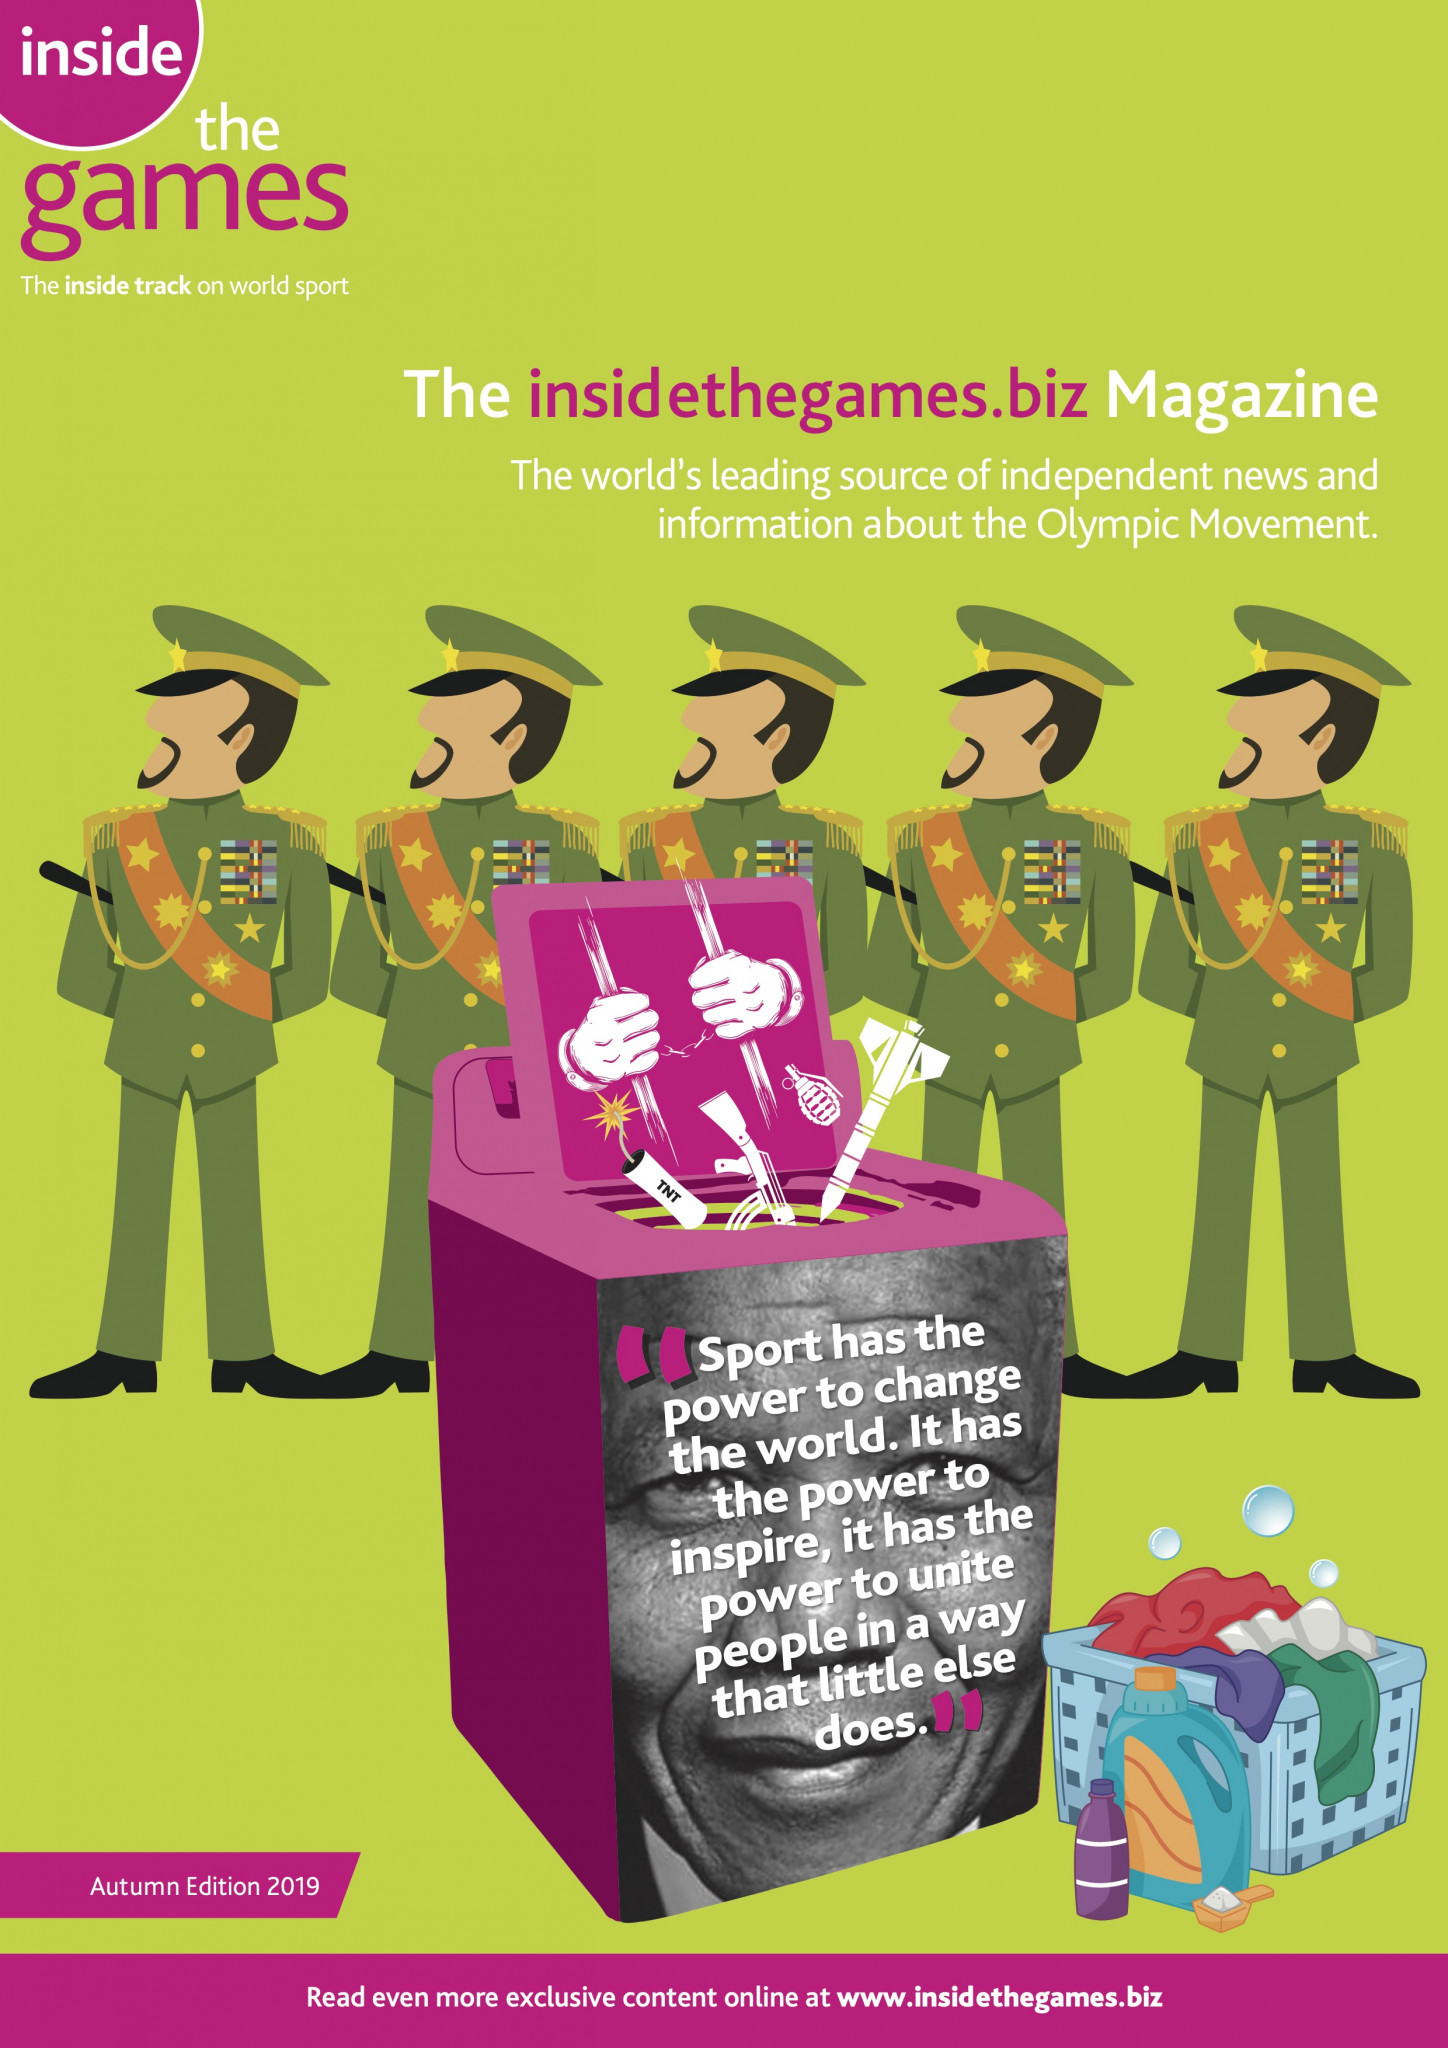 The insidethegames.biz Magazine Autumn Edition 2019